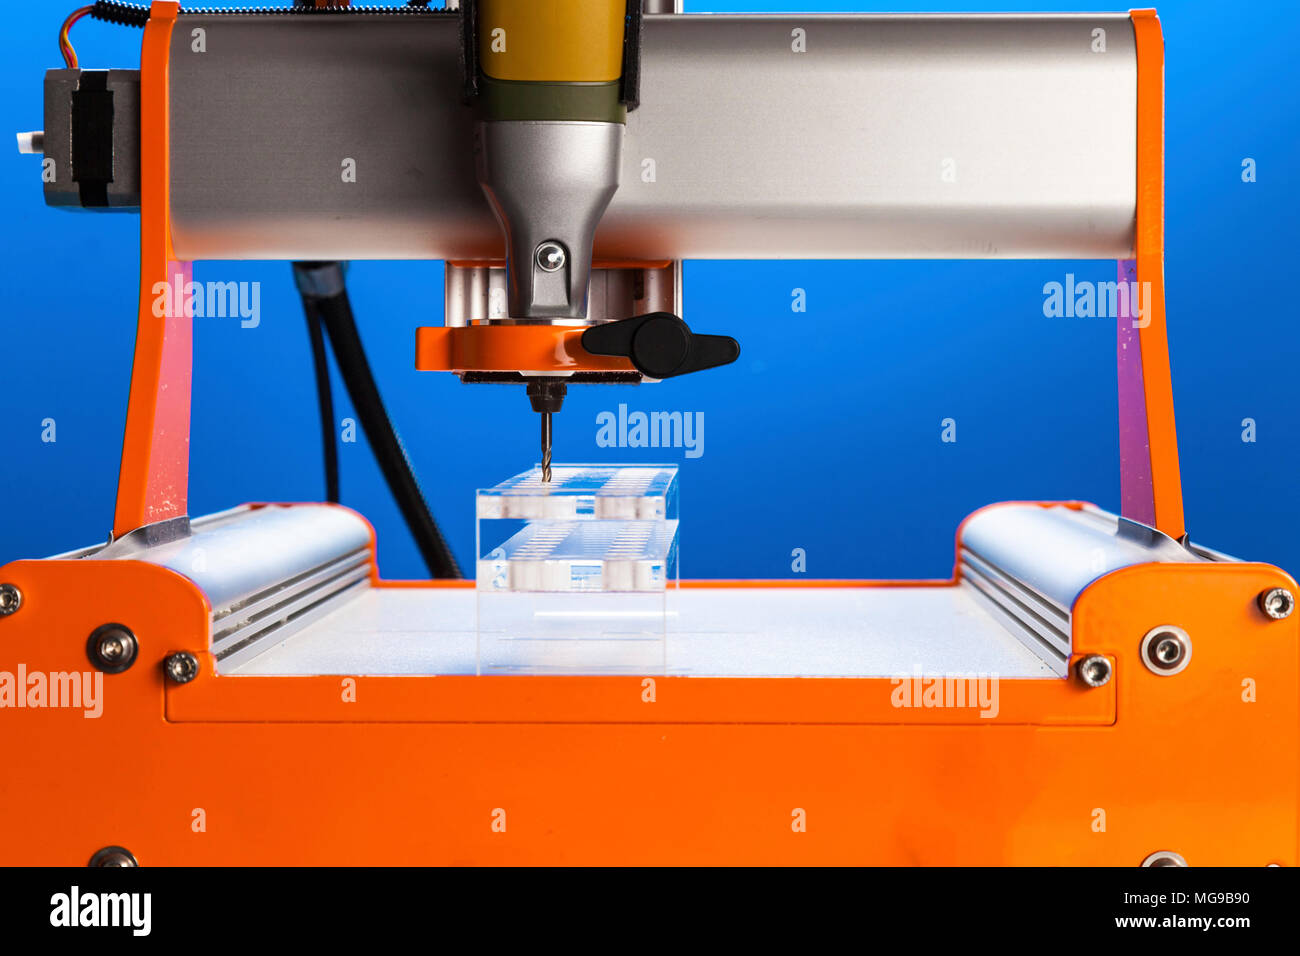 CNC milling machine drilling plastic block#. - Stock Image